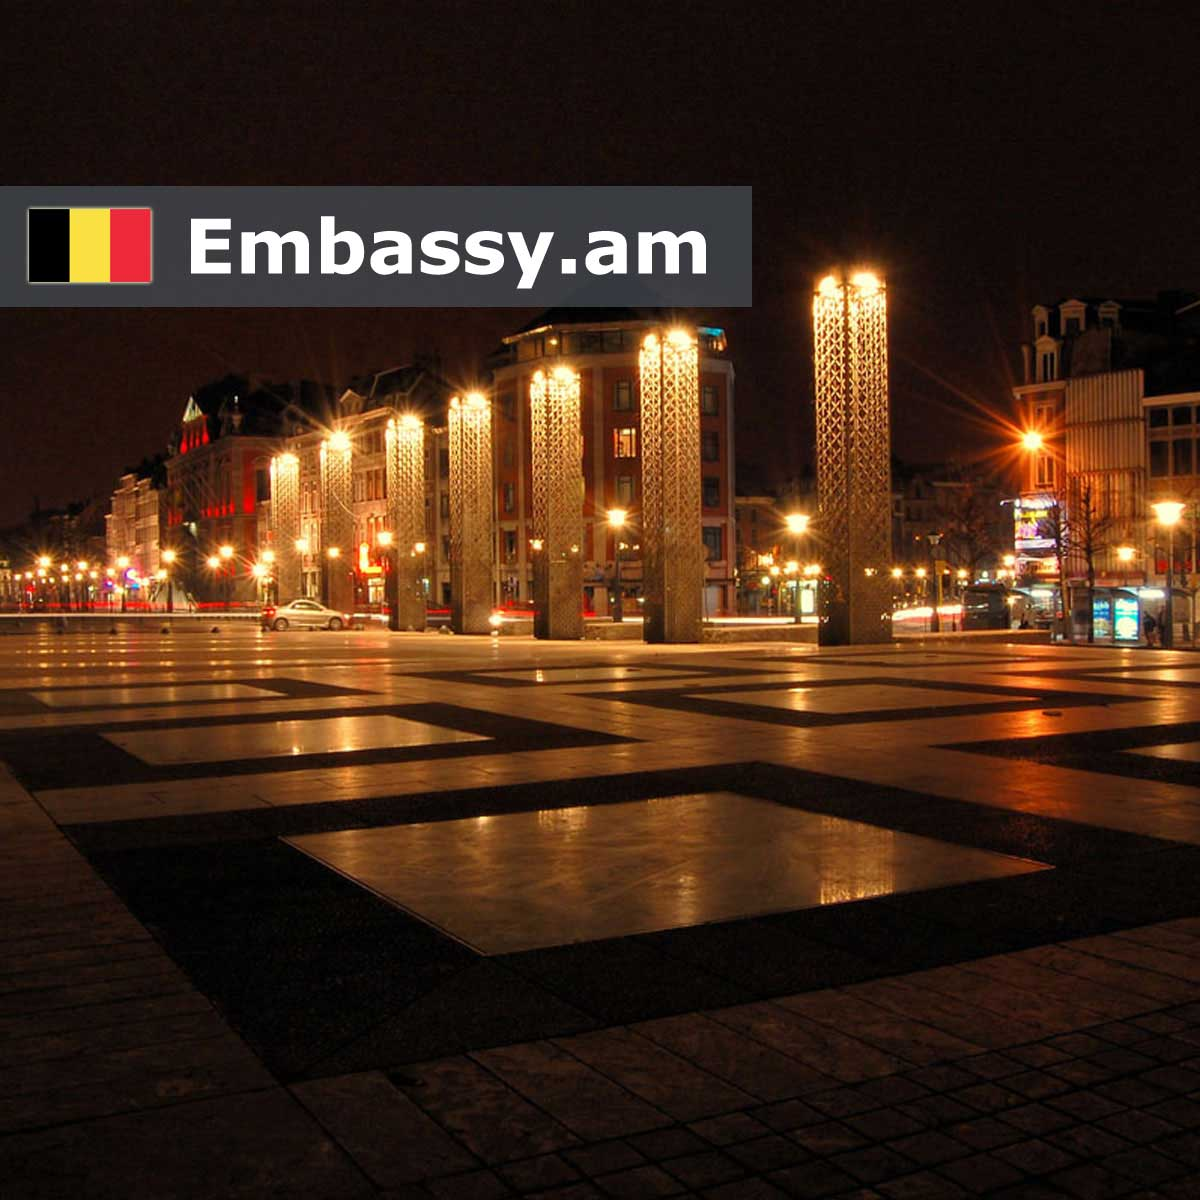 Liege - Hotels in Belgium - Embassy.am